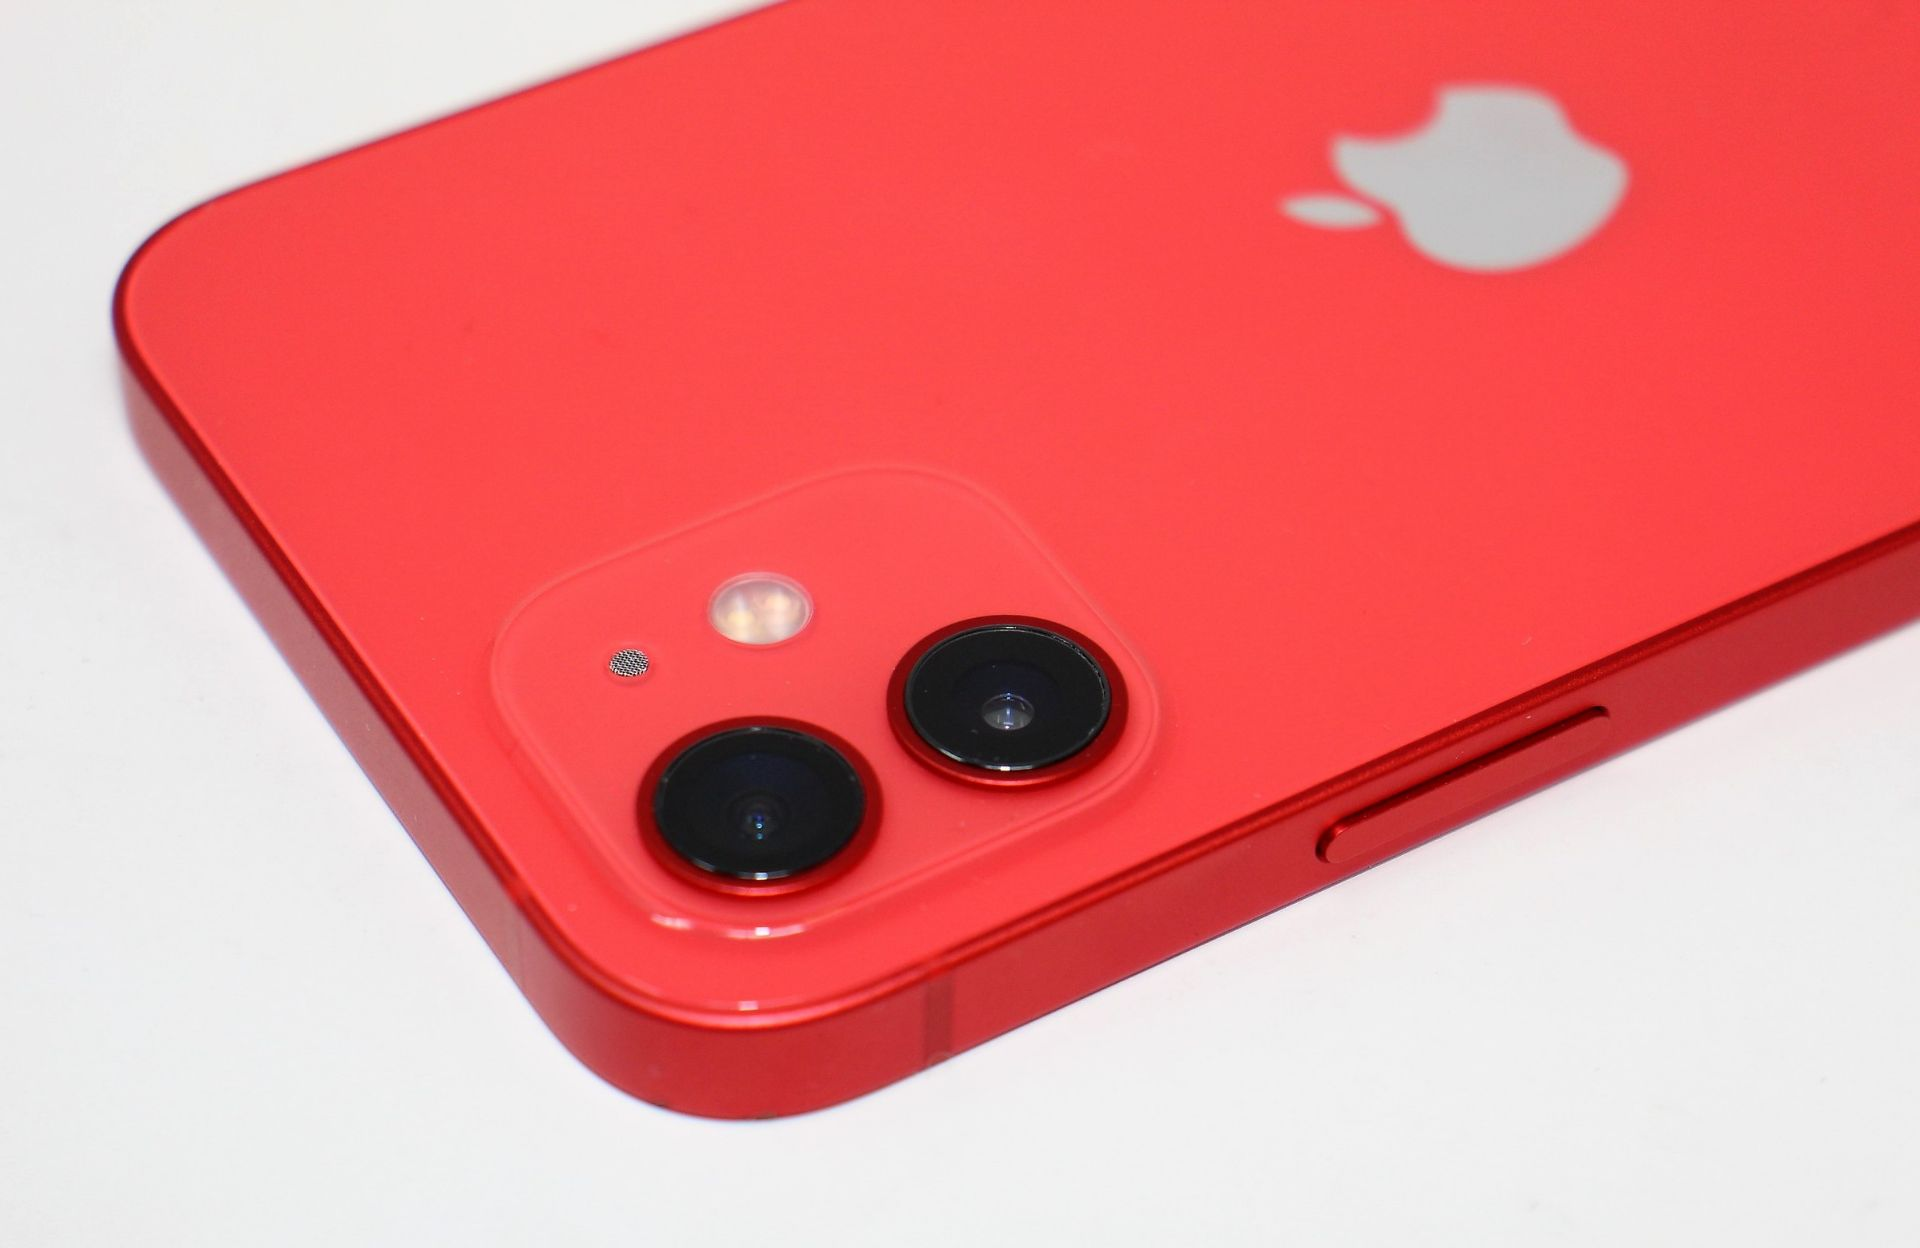 A pre-owned Apple iPhone 12 (Global/A2403) 128GB in Red (FRP clear. Some scratches to screen glass - Image 9 of 16